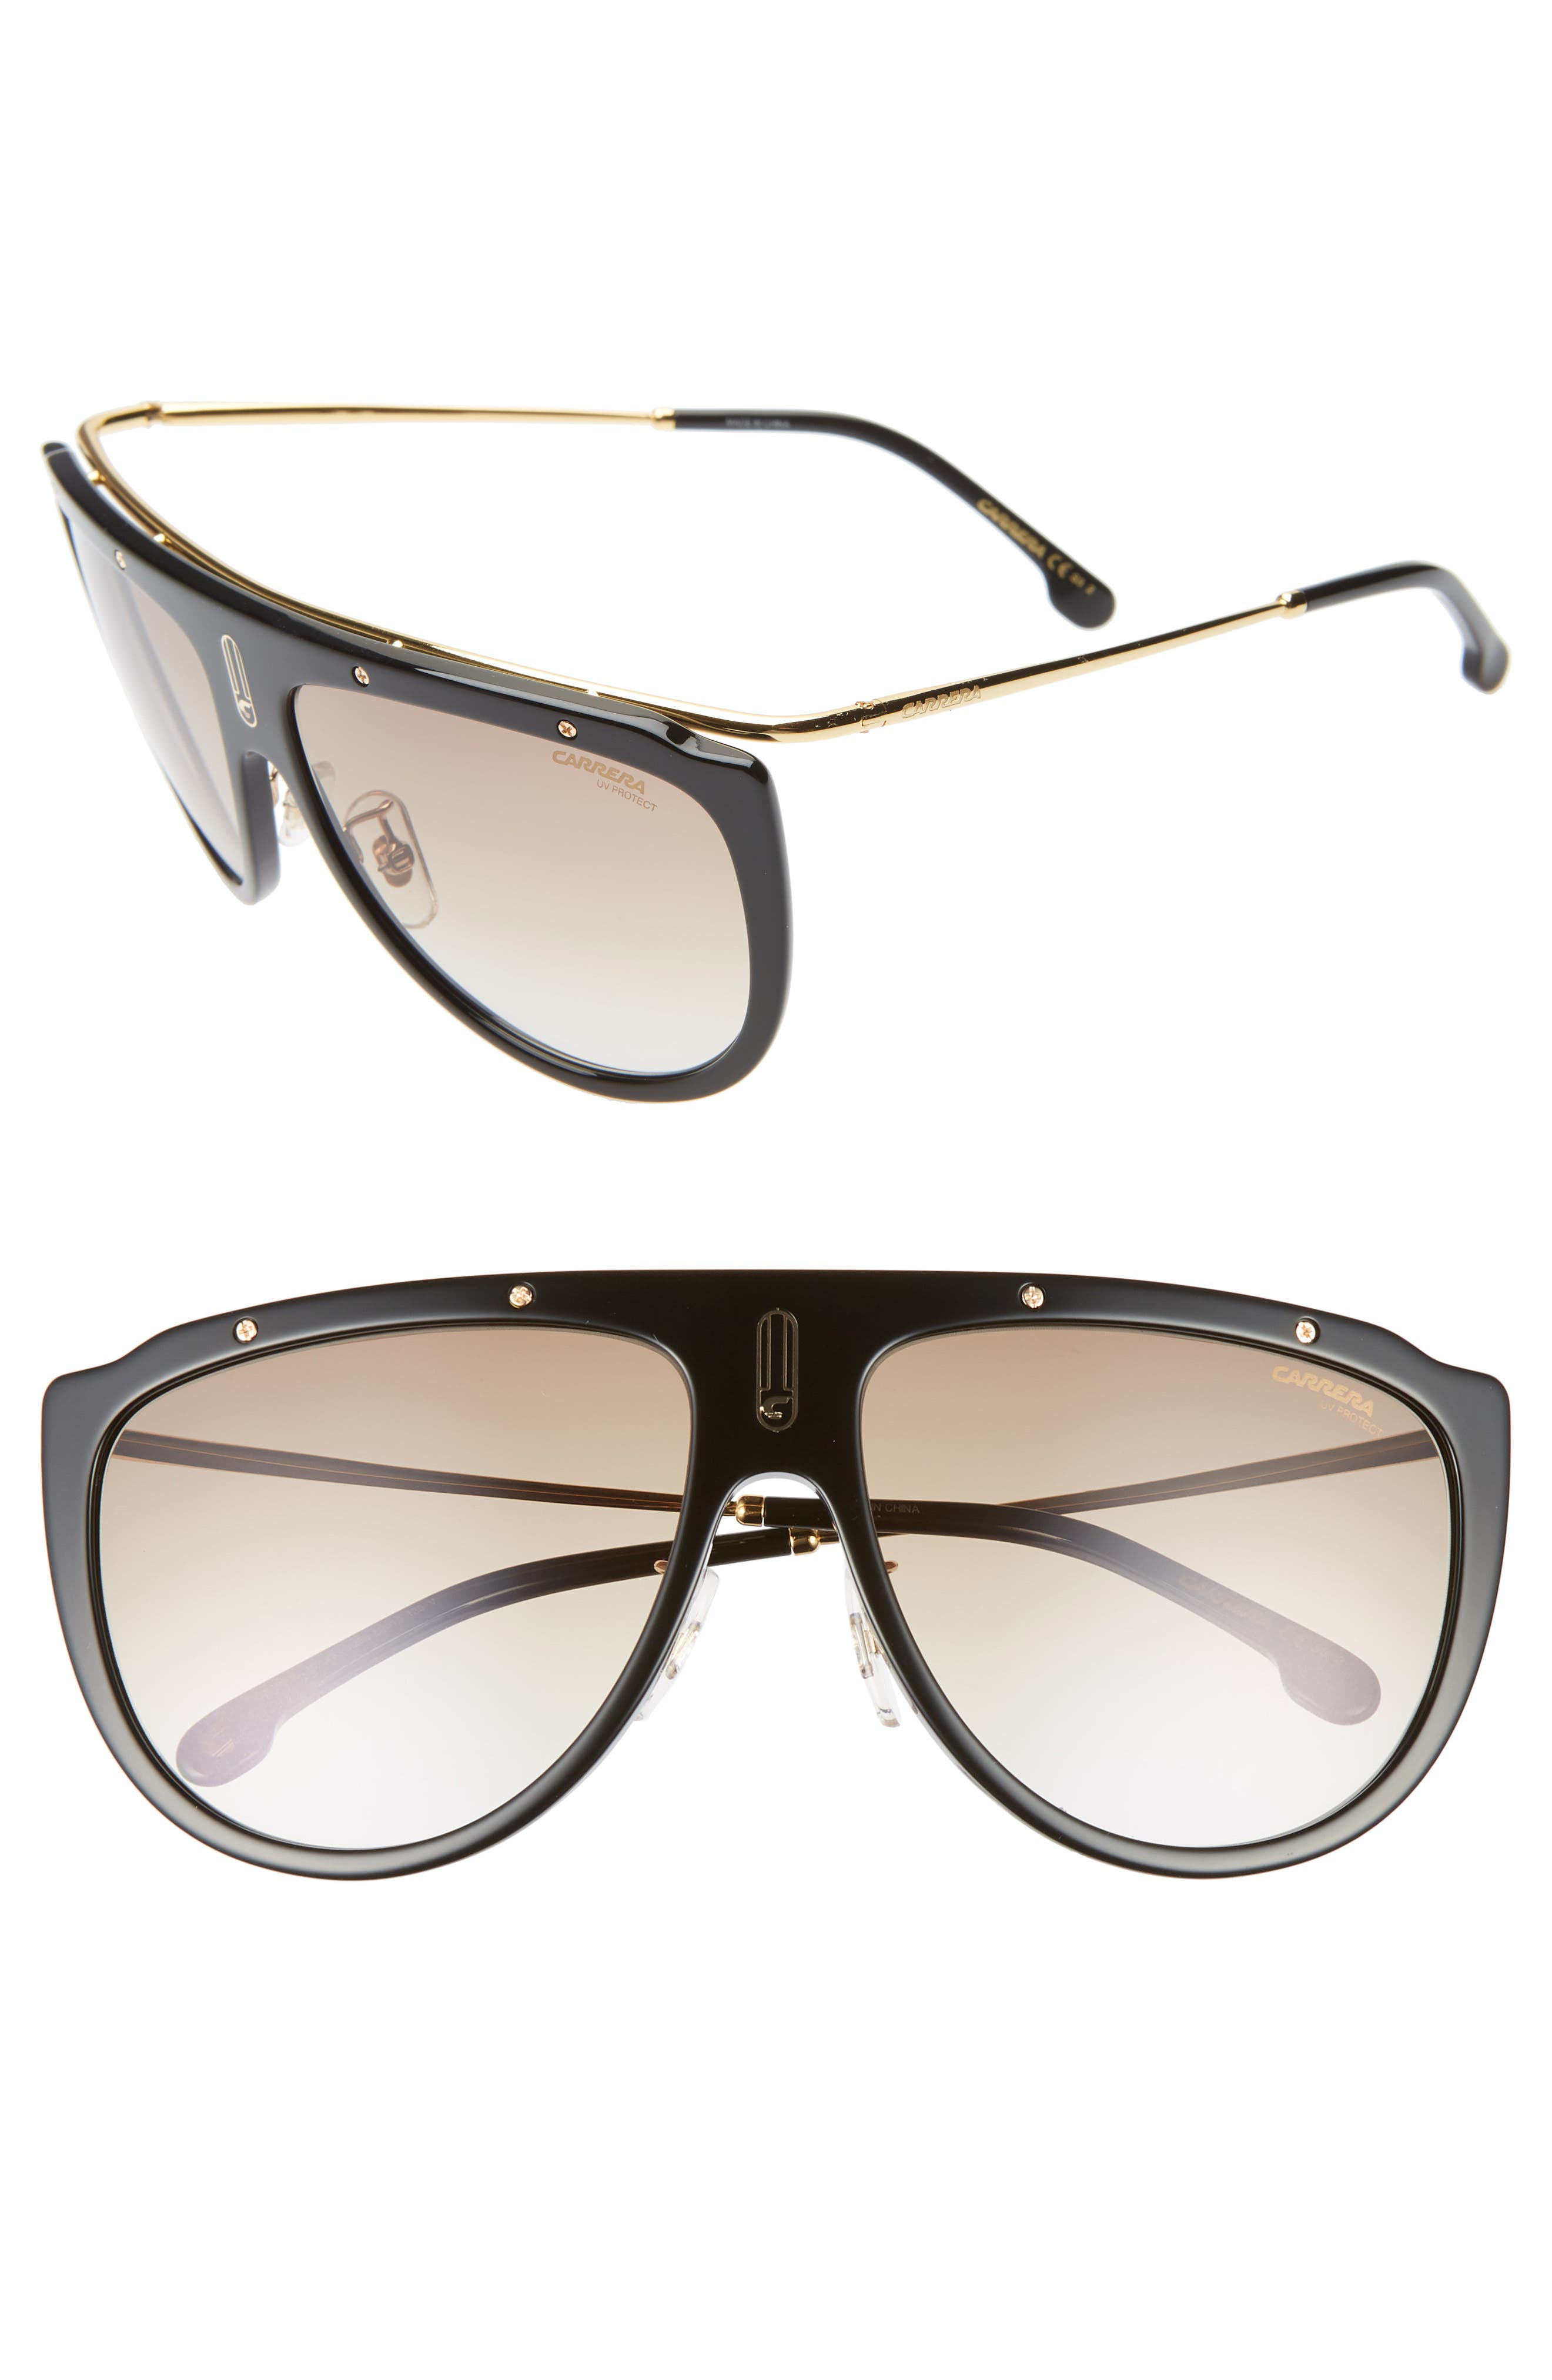 Carrera Eyewear 60Mm Aviator Sunglasses - Black Gold